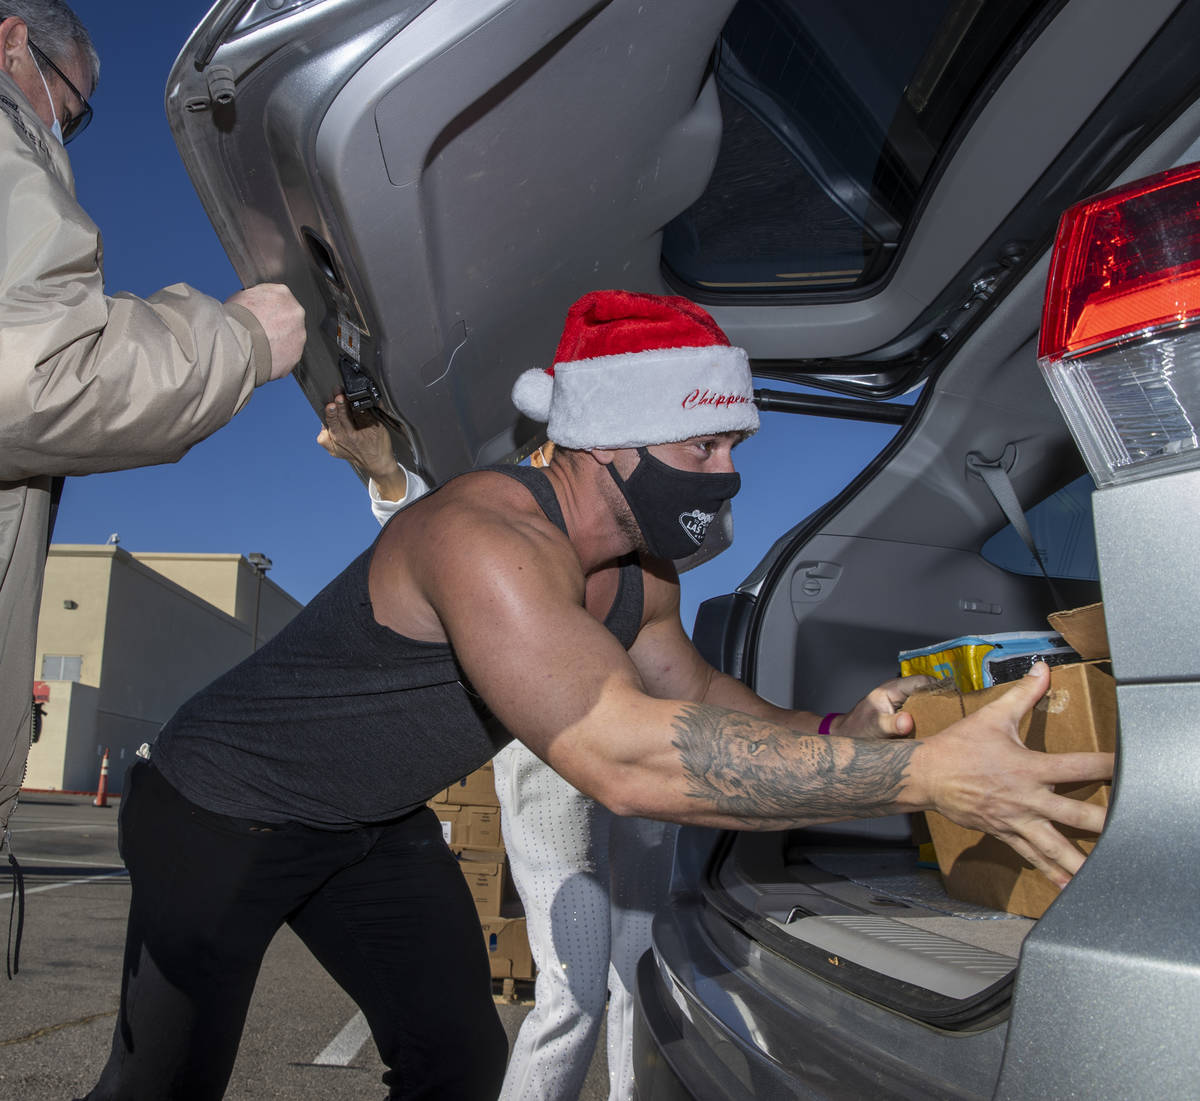 Chippendales member Ryan Worley loads up turkeys and cookies to an awaiting vehicle during the ...